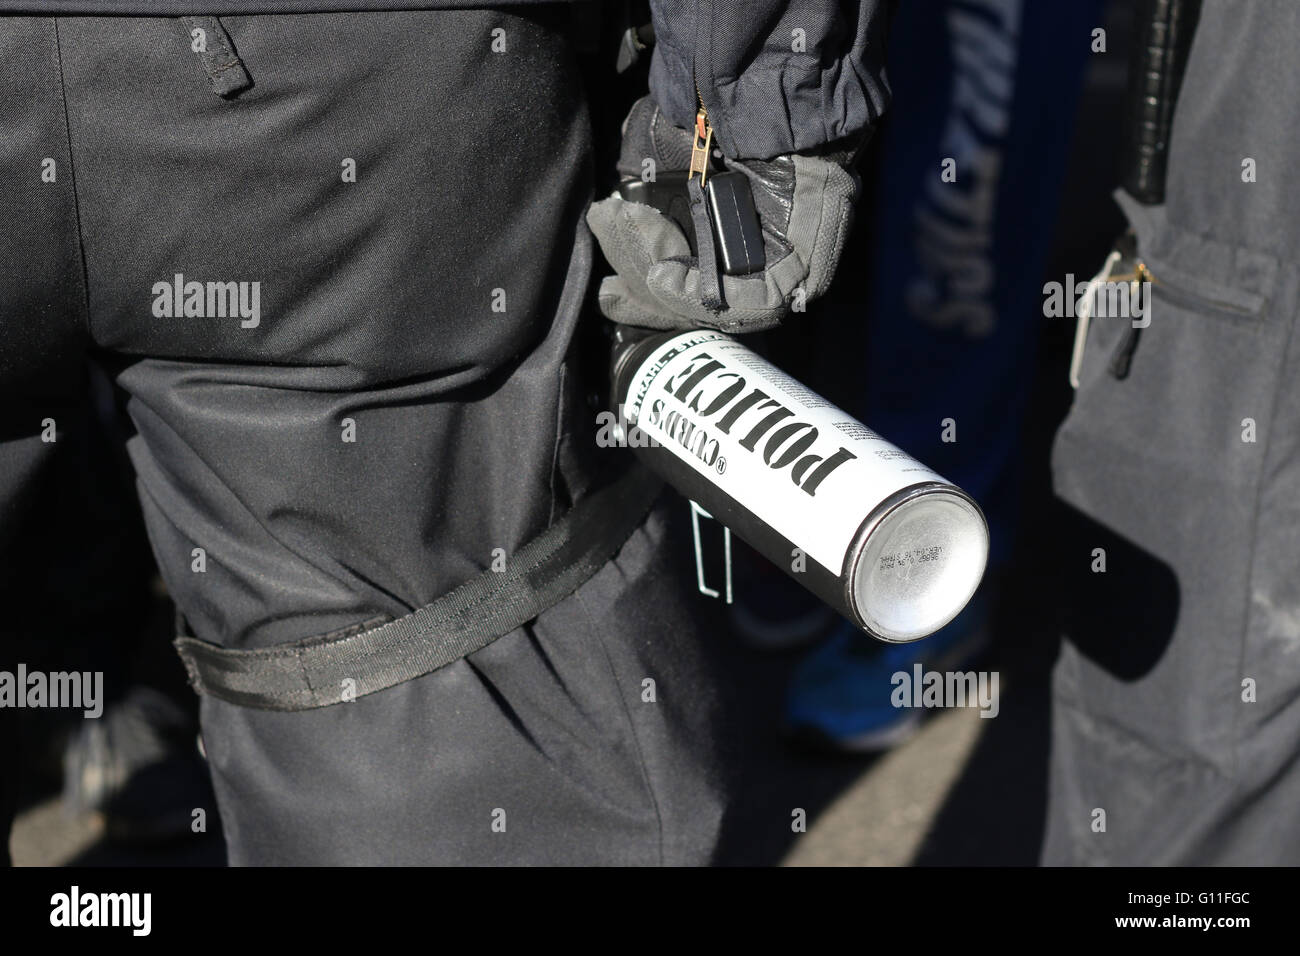 Riot police hold canisters of CS gas. Thousands of anti-fascist campaigners held a counter protest against right - Stock Image